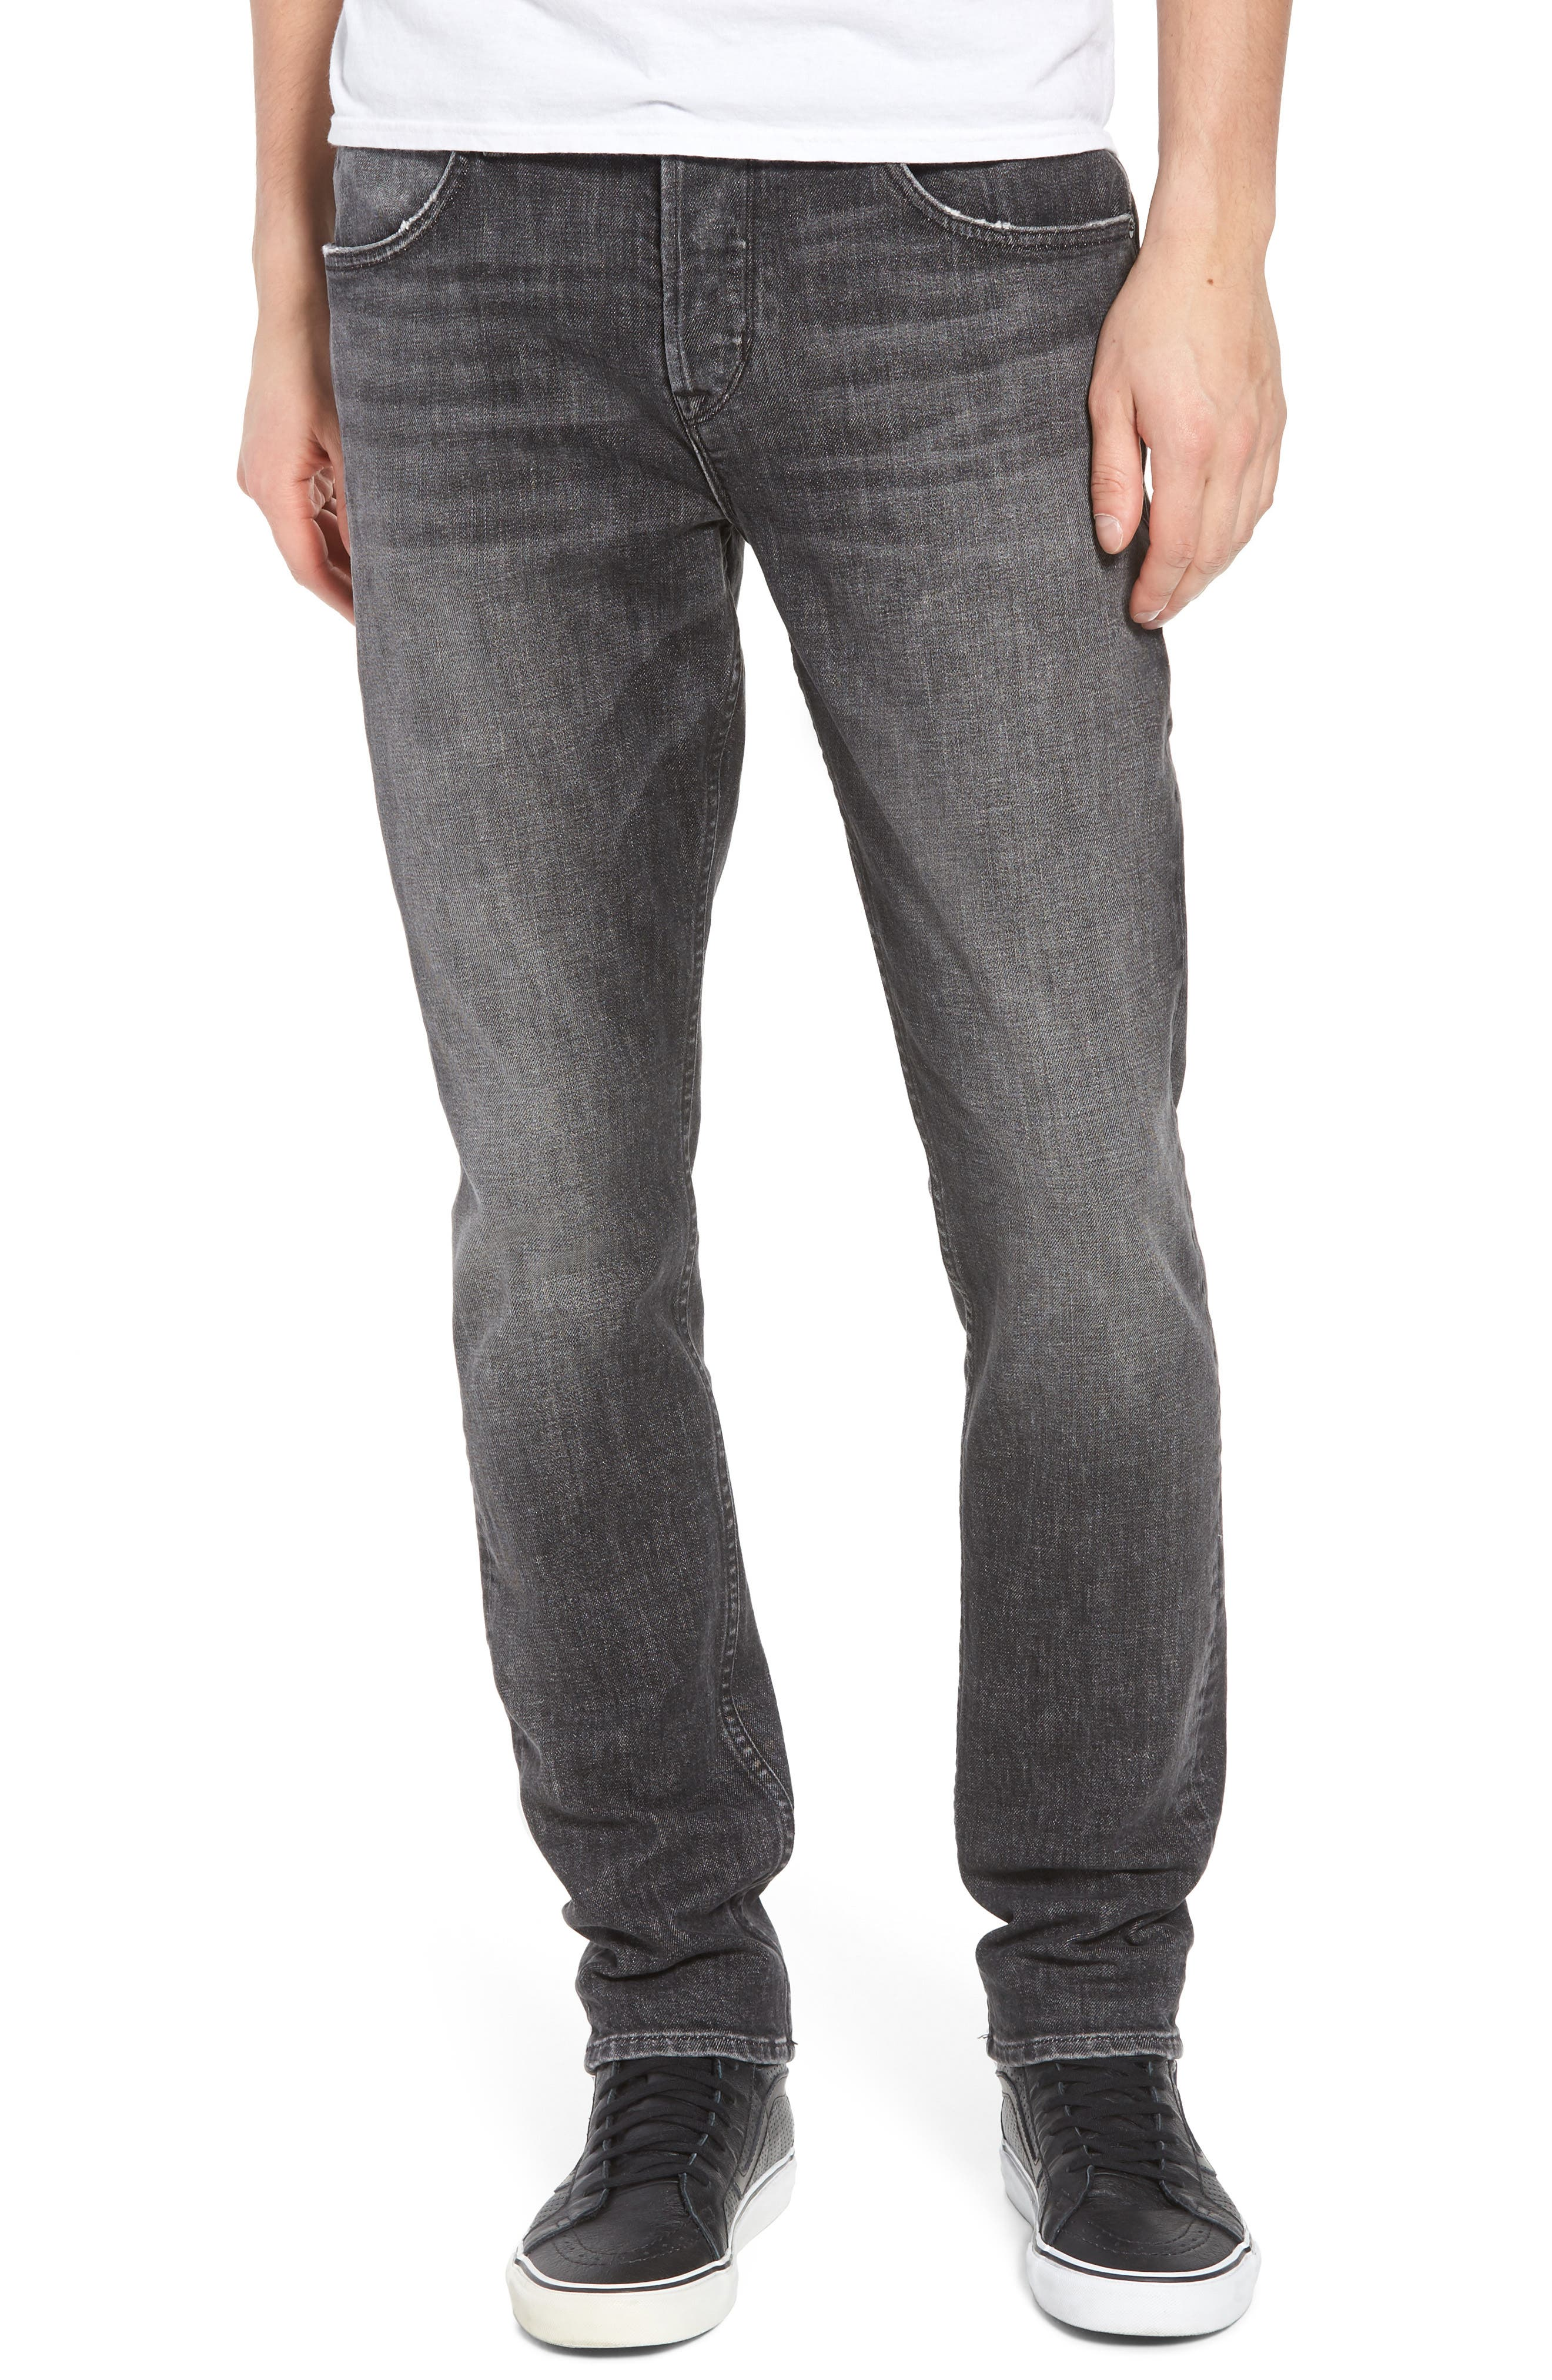 Axl Skinny Fit Jeans,                             Main thumbnail 1, color,                             001